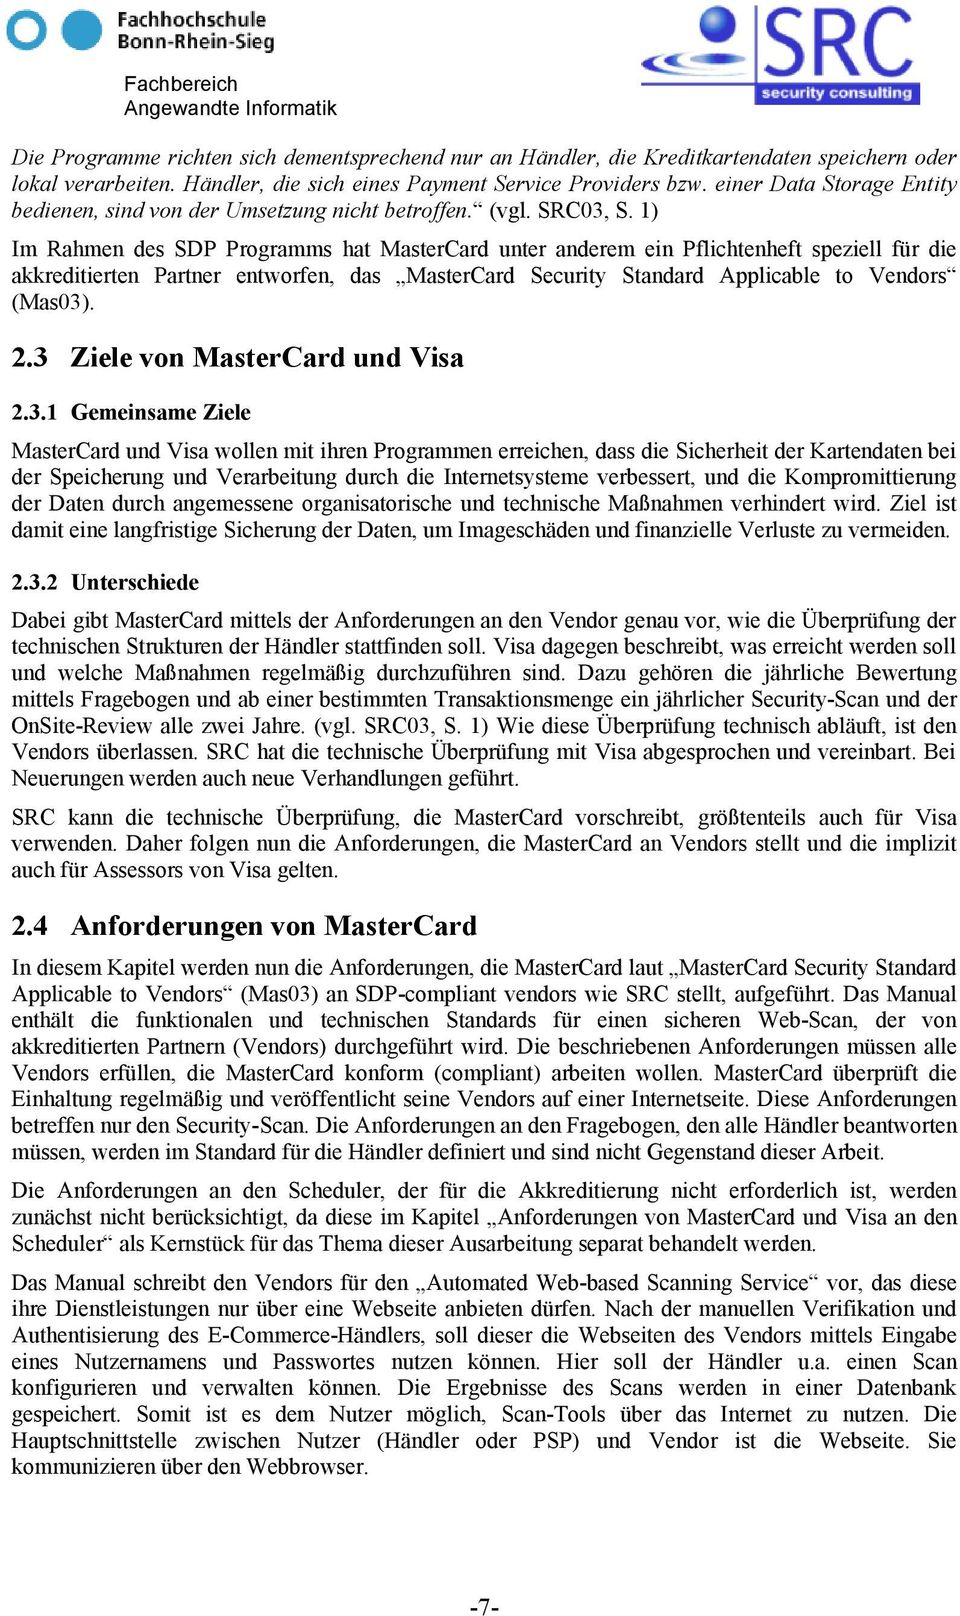 1) Im Rahmen des SDP Programms hat MasterCard unter anderem ein Pflichtenheft speziell für die akkreditierten Partner entworfen, das MasterCard Security Standard Applicable to Vendors (Mas03). 2.